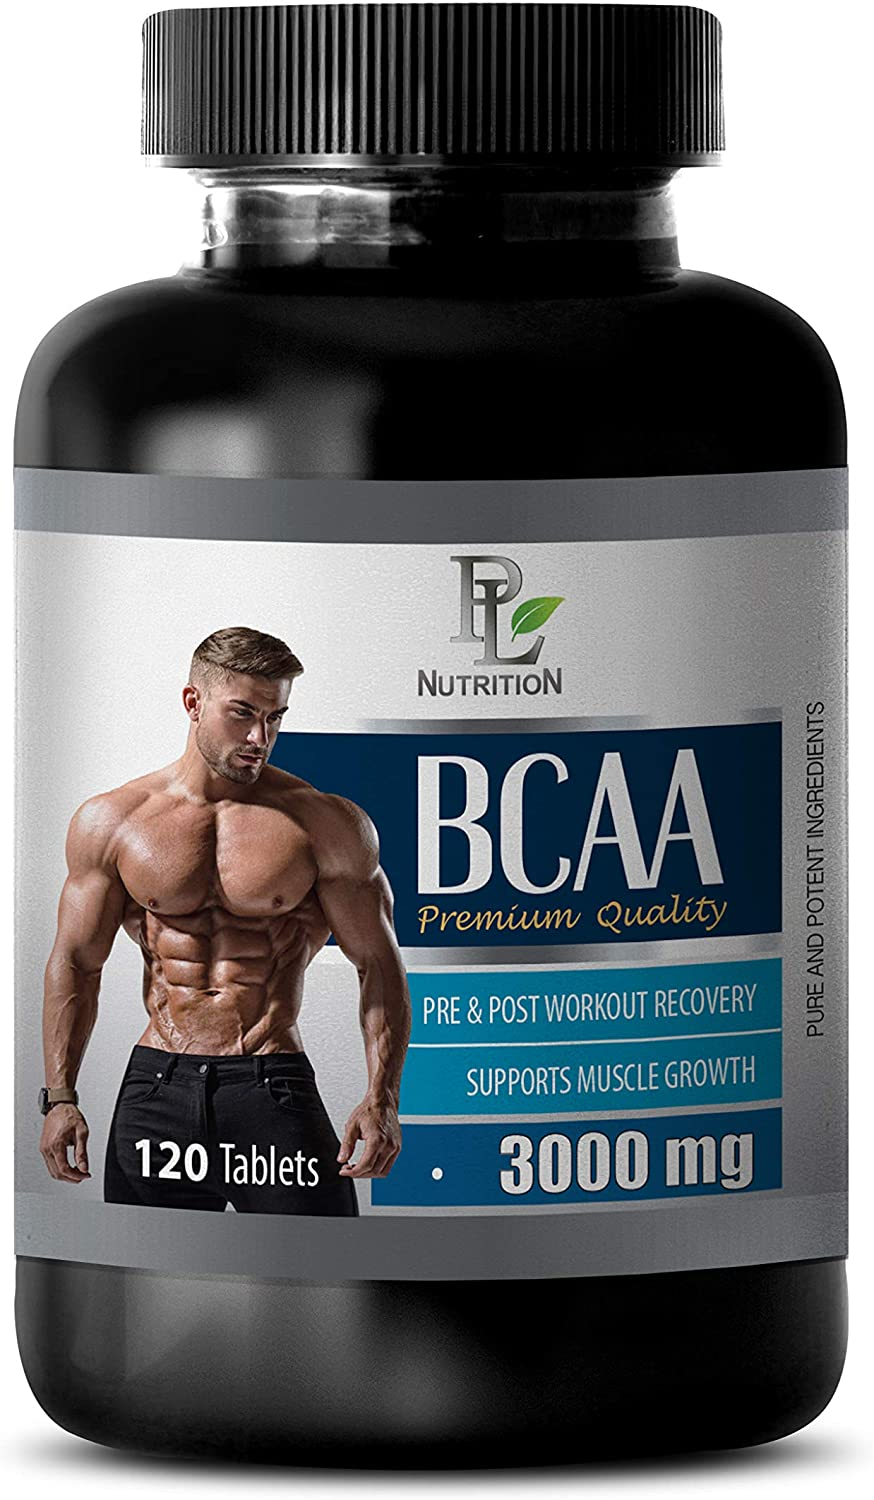 Muscle Growth Products - BCAA 3000 MG PRE & Post Workout Recovery - Premium Quality - high Quality bcaa - 1 Bottle 120 Tablets